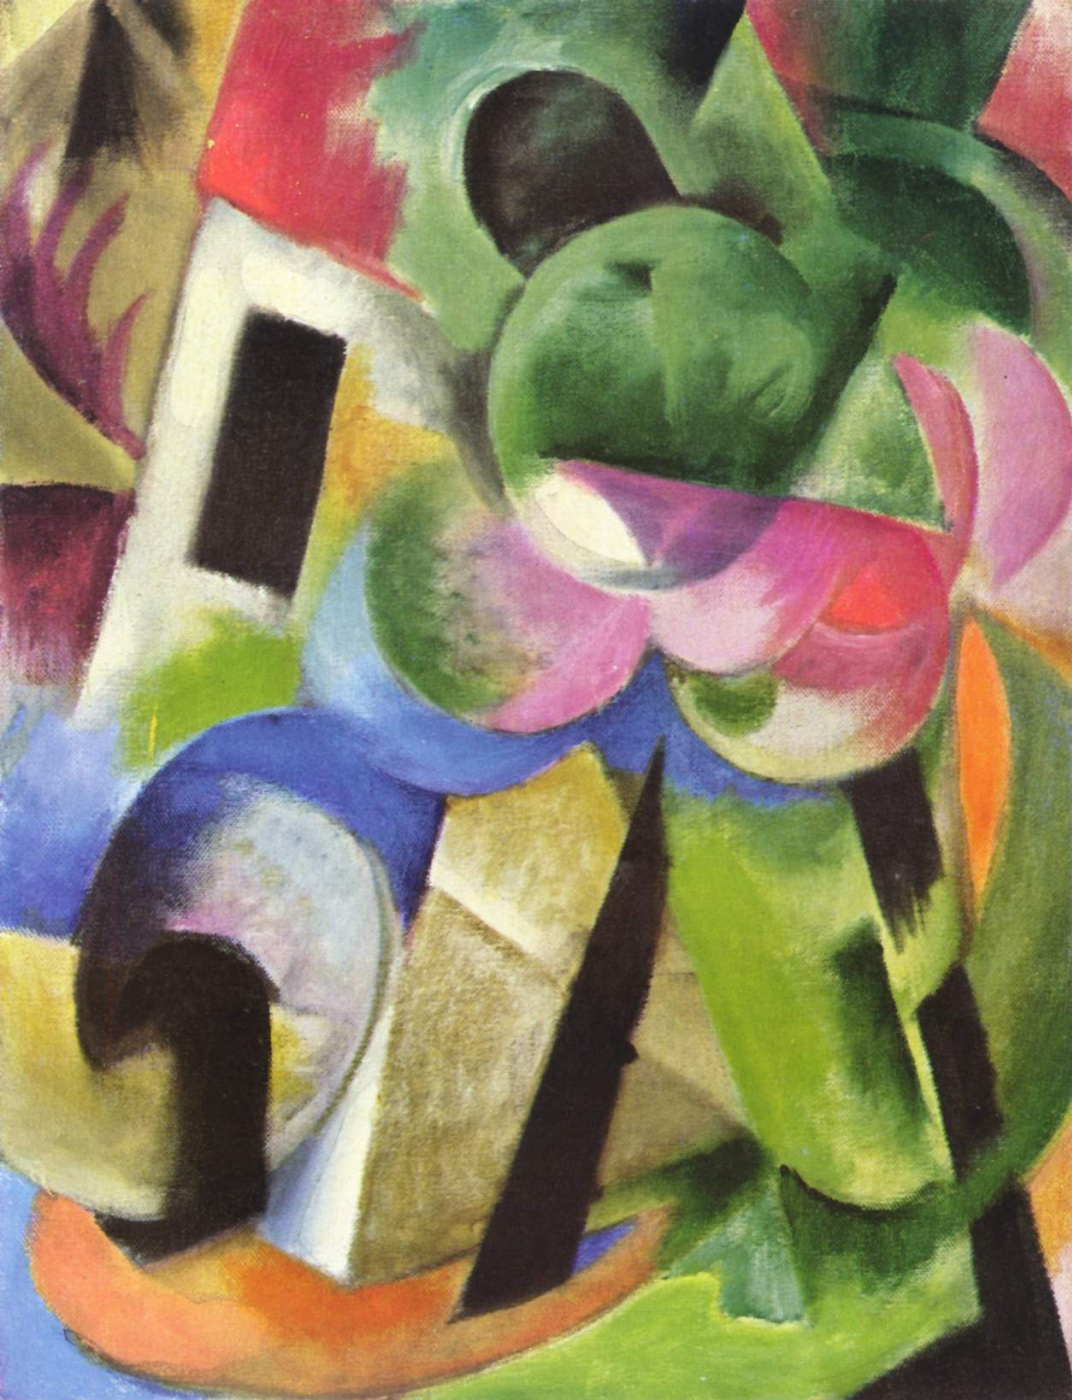 Franz Marc. Small composition II